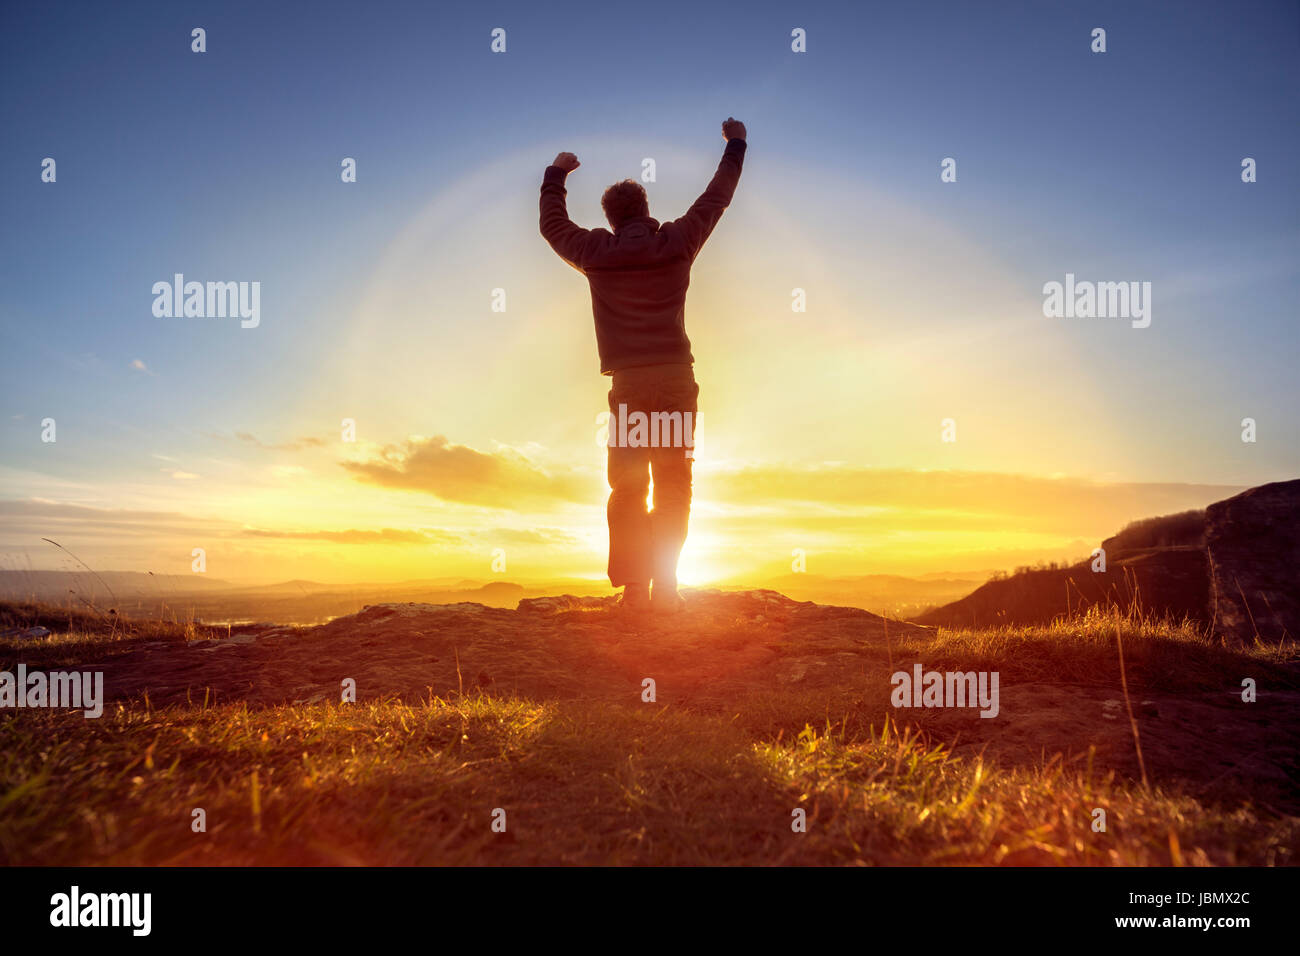 Happy man celebrating winning success or worship and praise against sunset - Stock Image